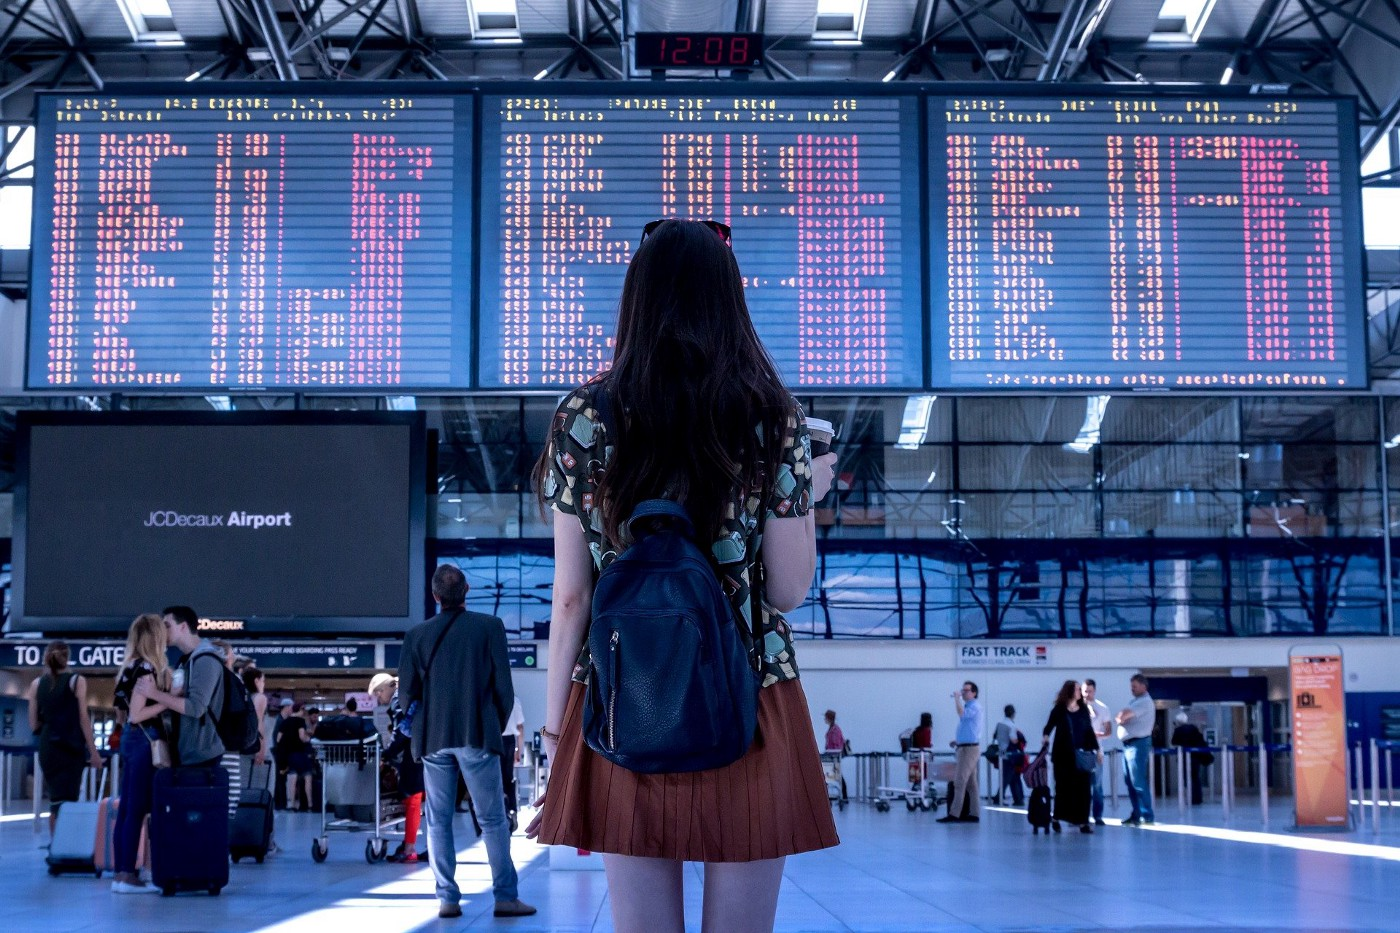 Girl looking at giant departure screen on airport.